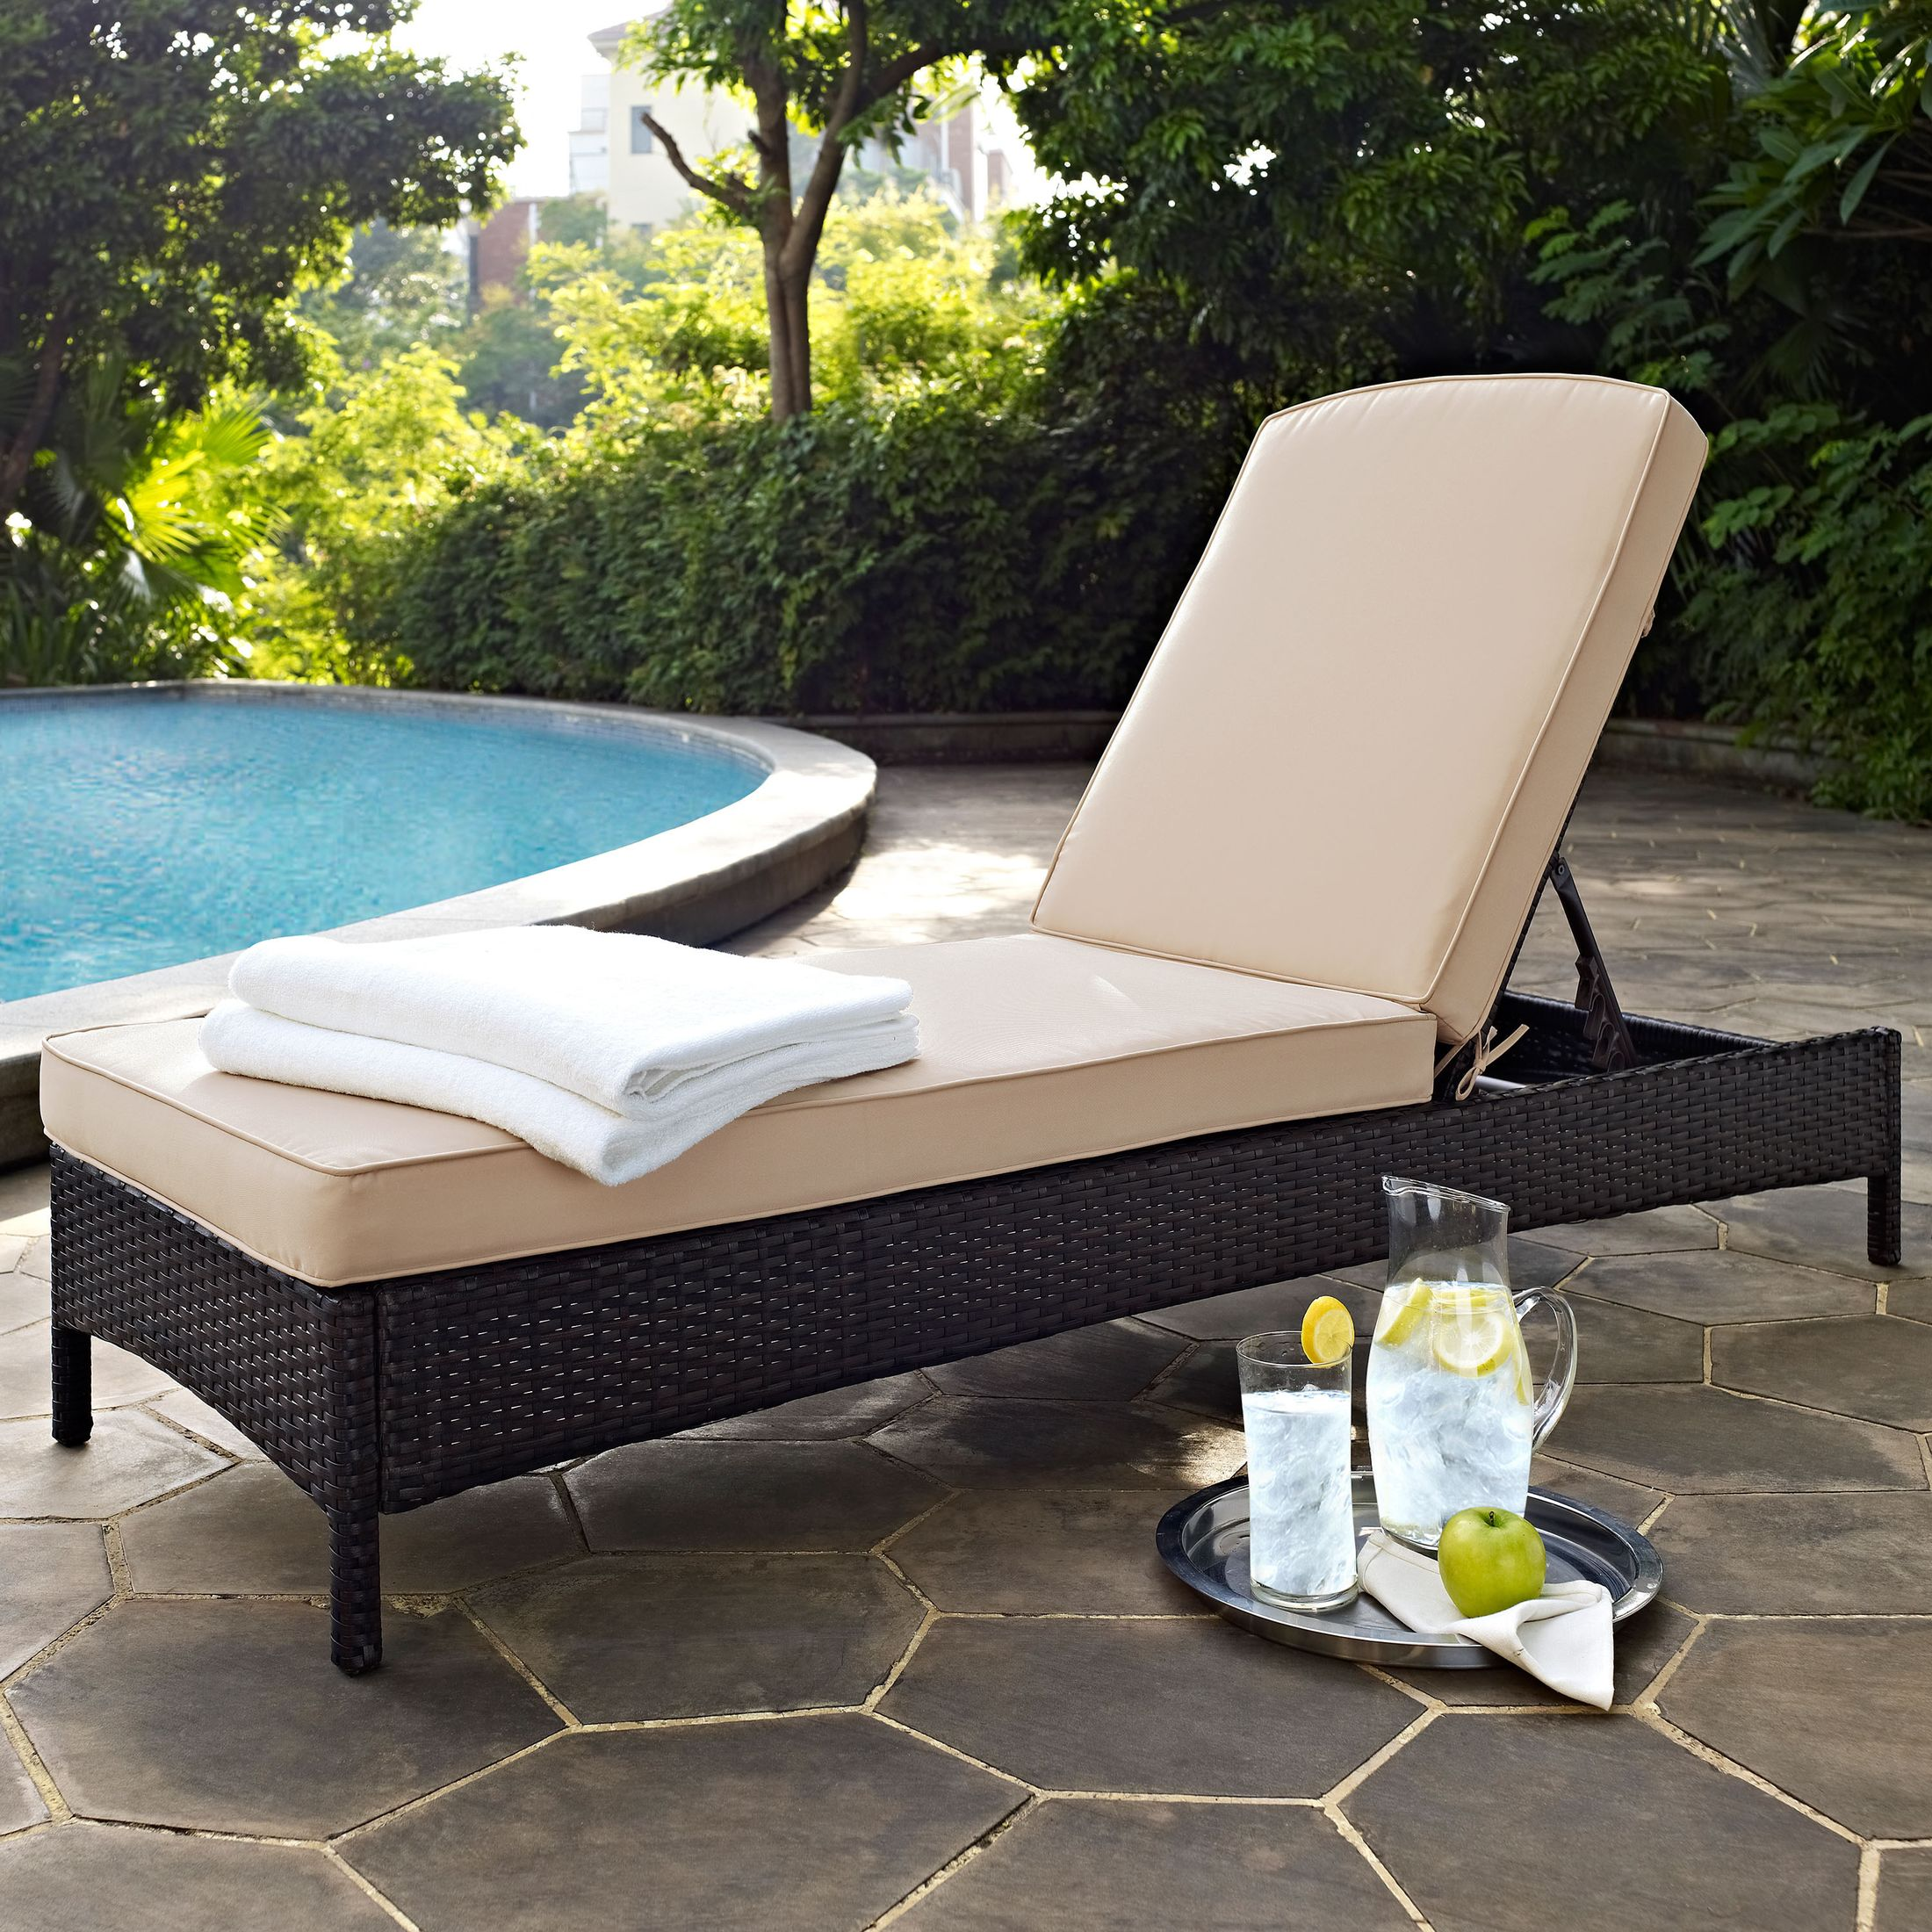 Outdoor Furniture - Aldo Outdoor Chaise Lounge